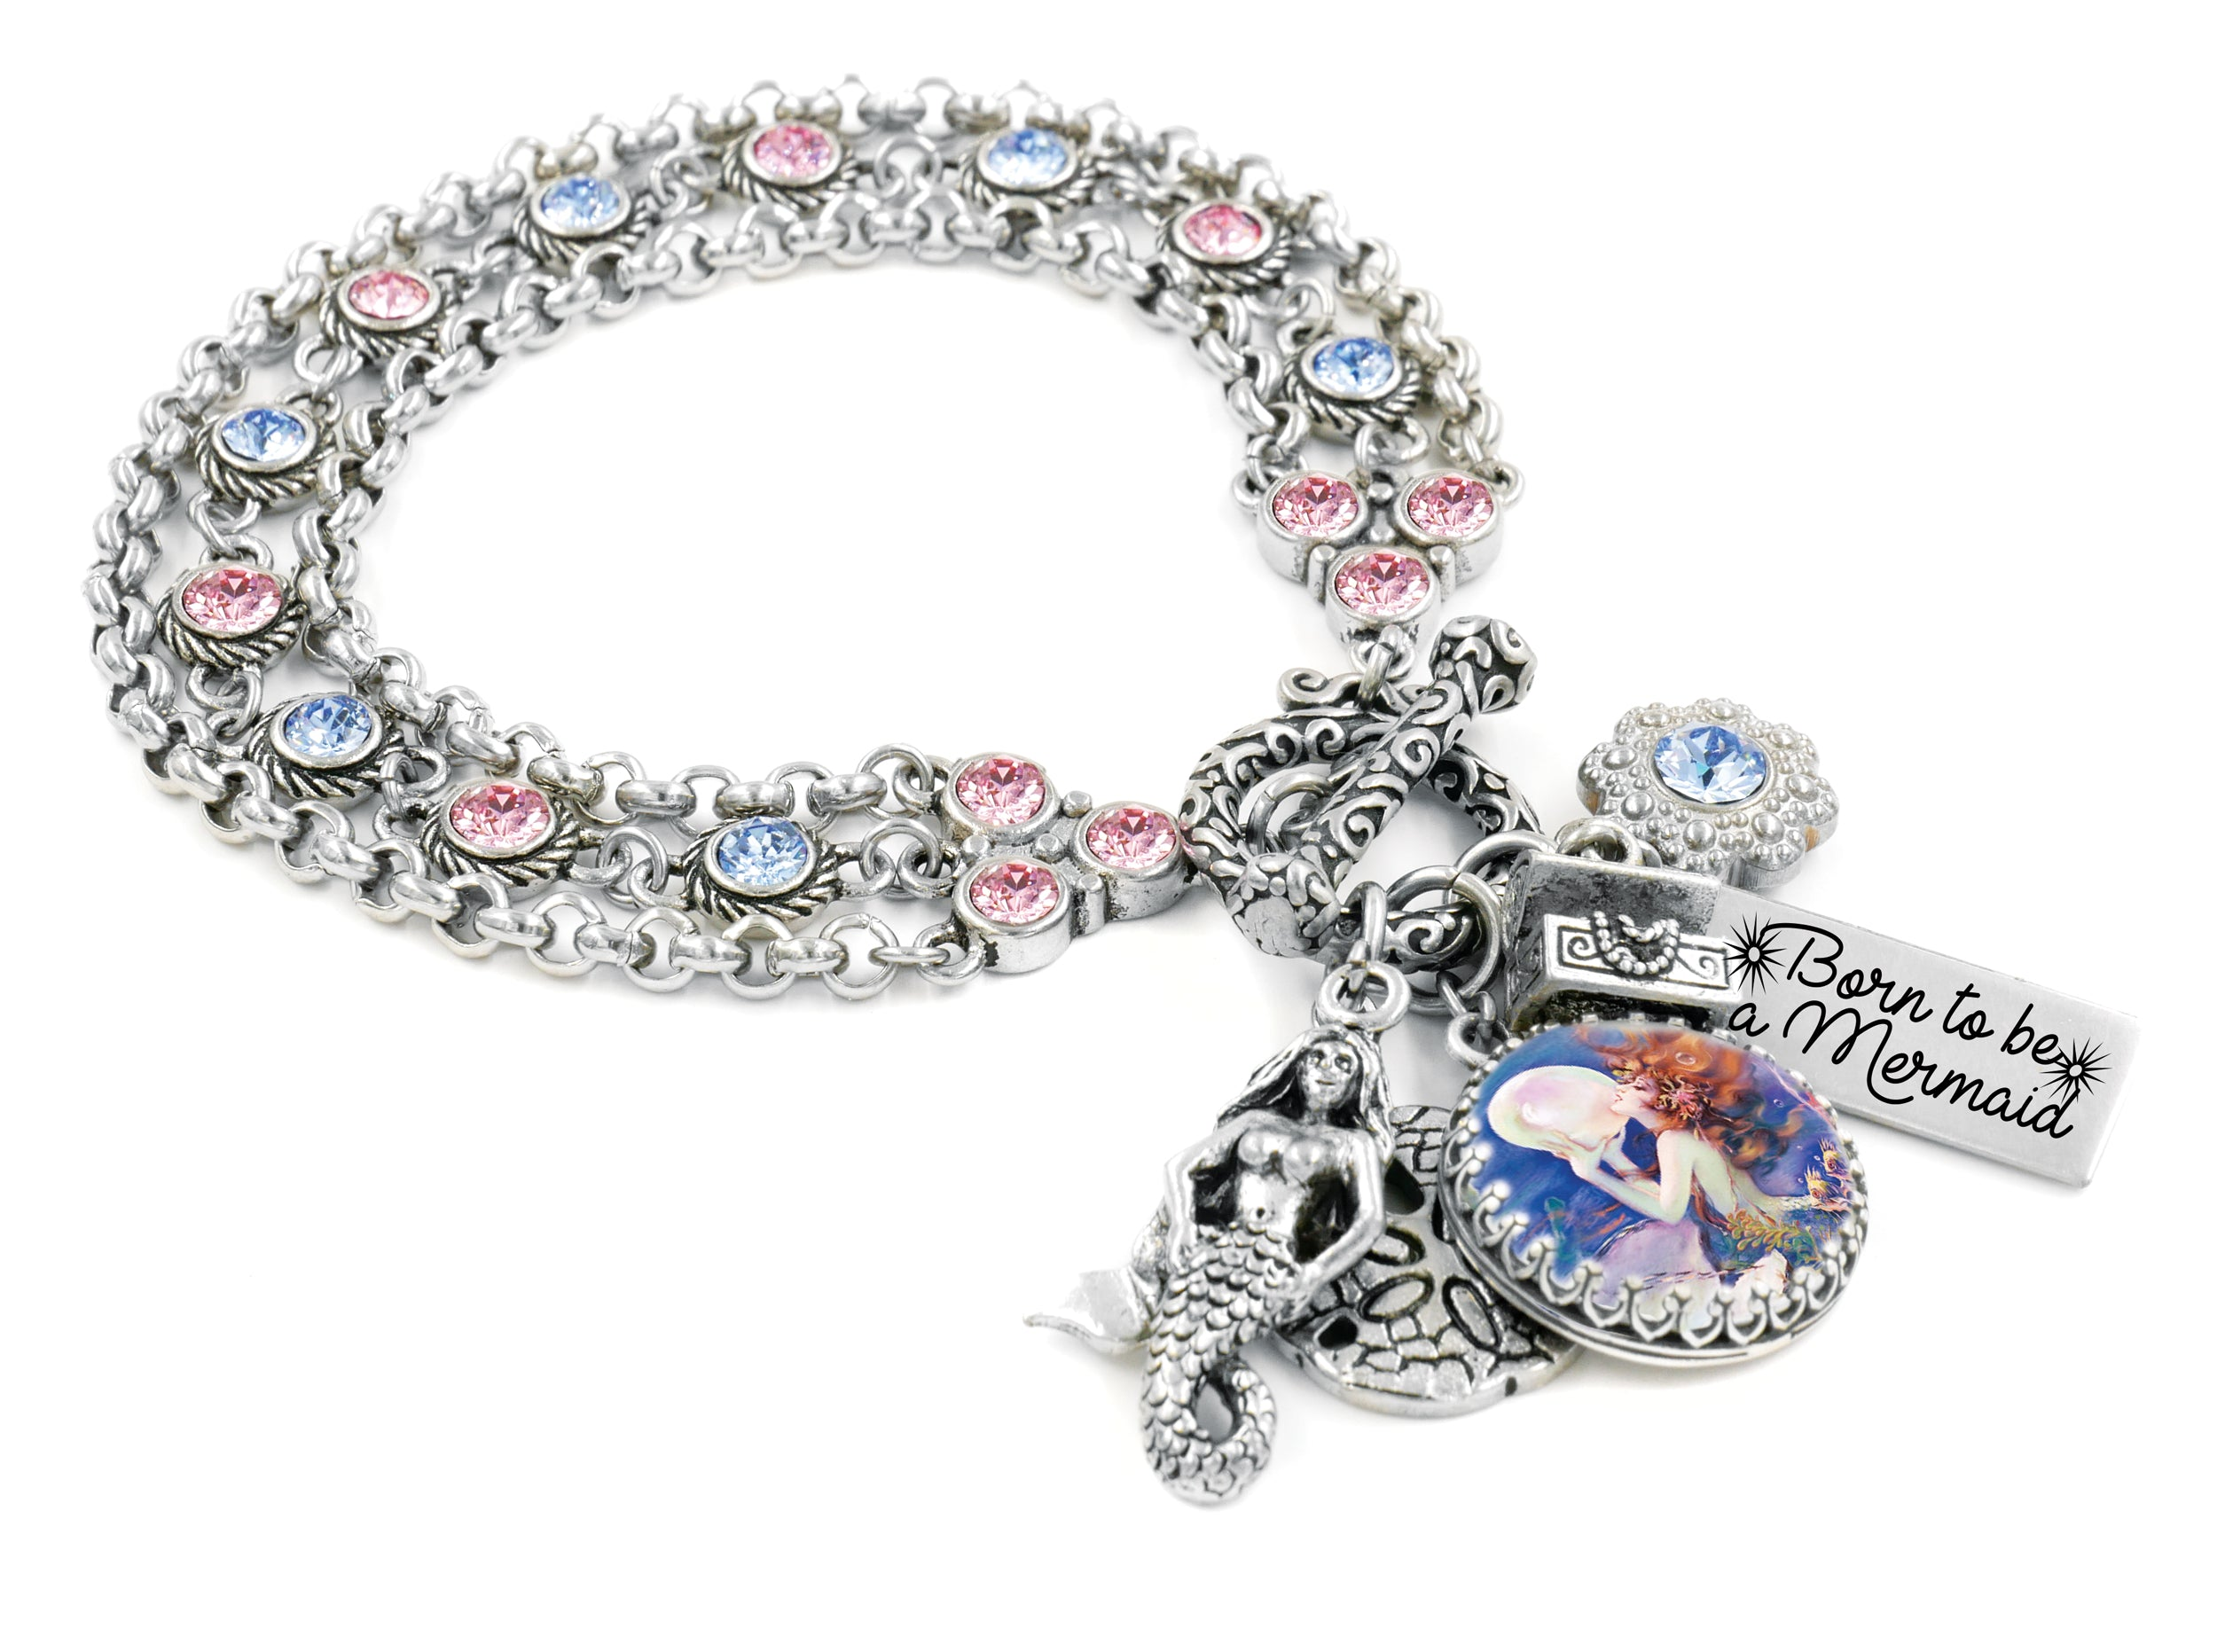 Beautiful Girls Bracelet Pic Photos - Jewelry Collection Ideas ...